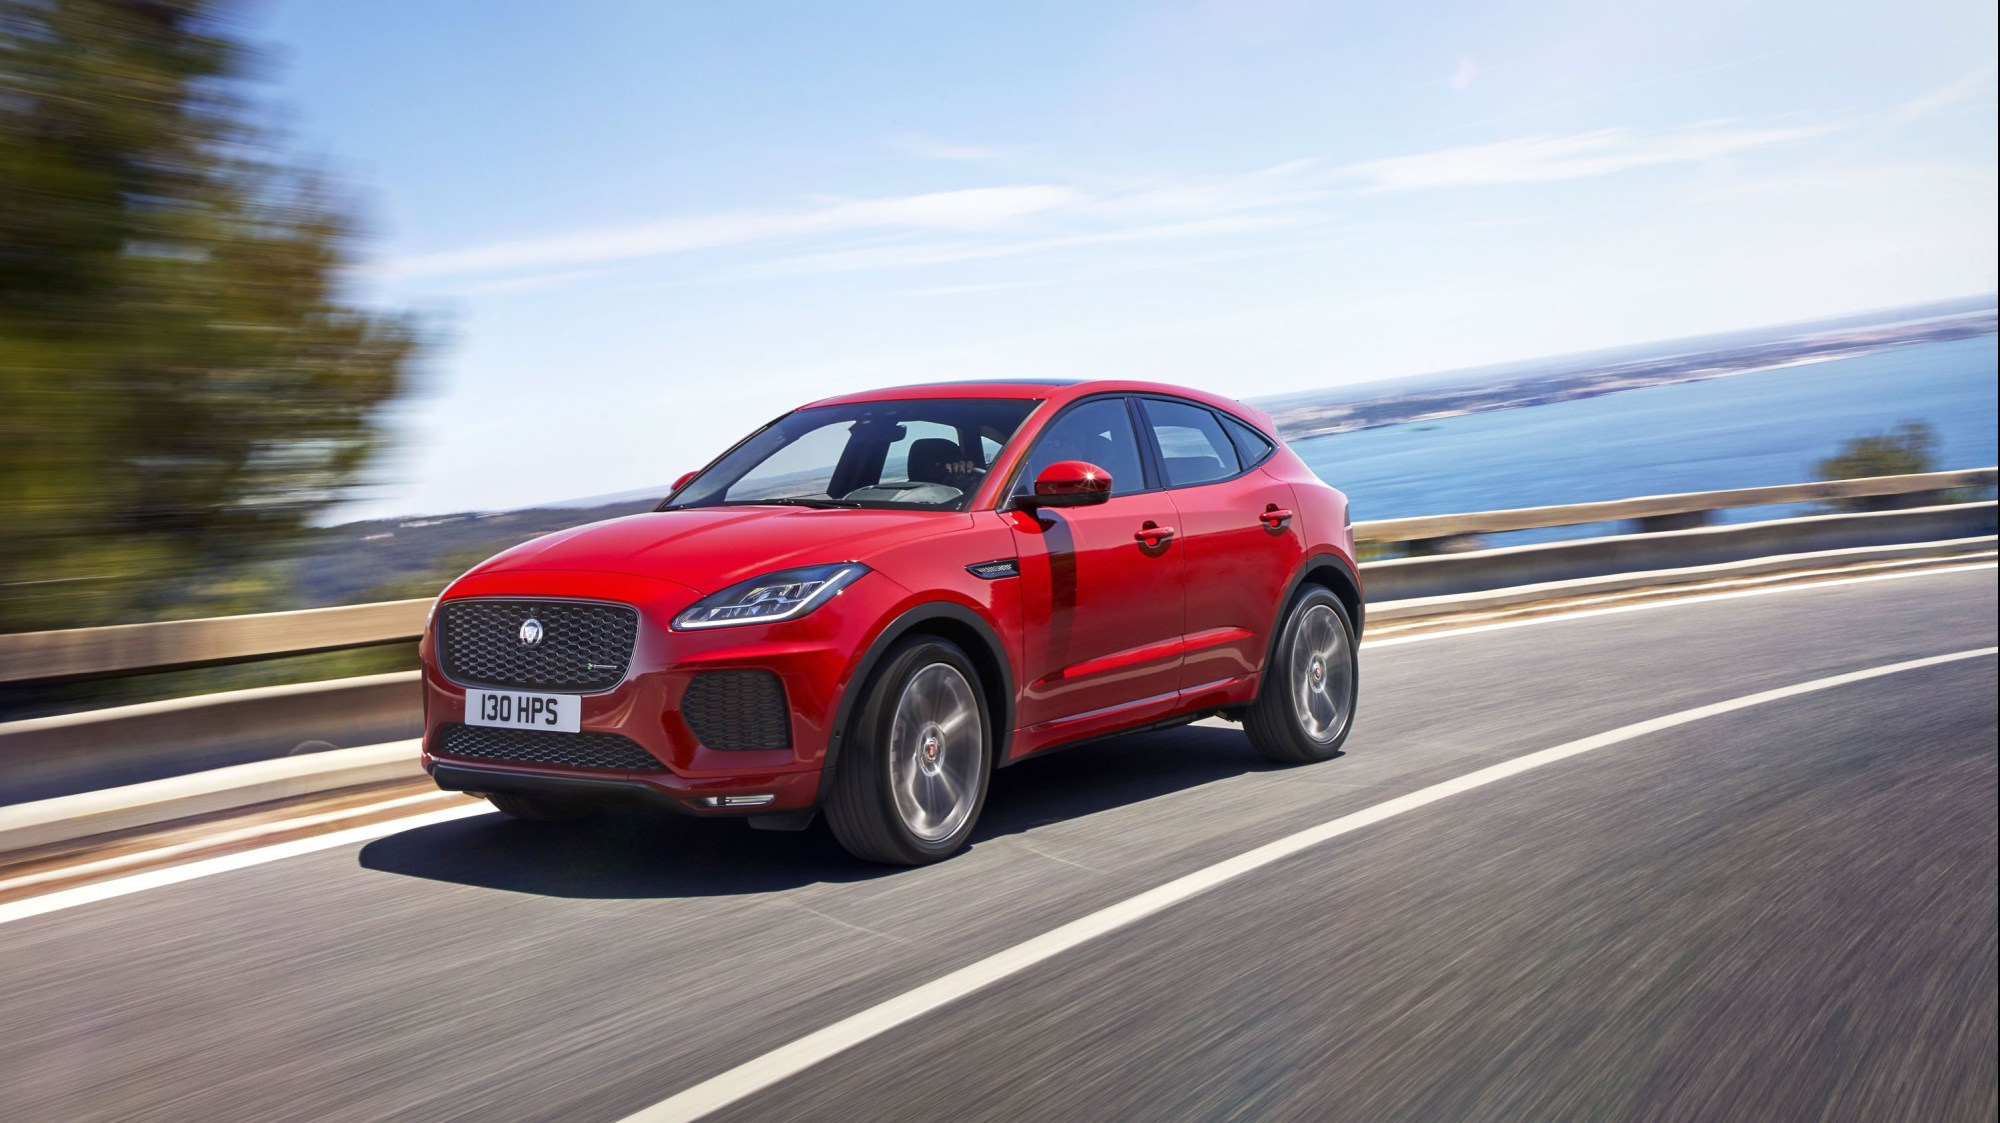 hight resolution of jaguar e pace reviews specs prices photos and videos top speed